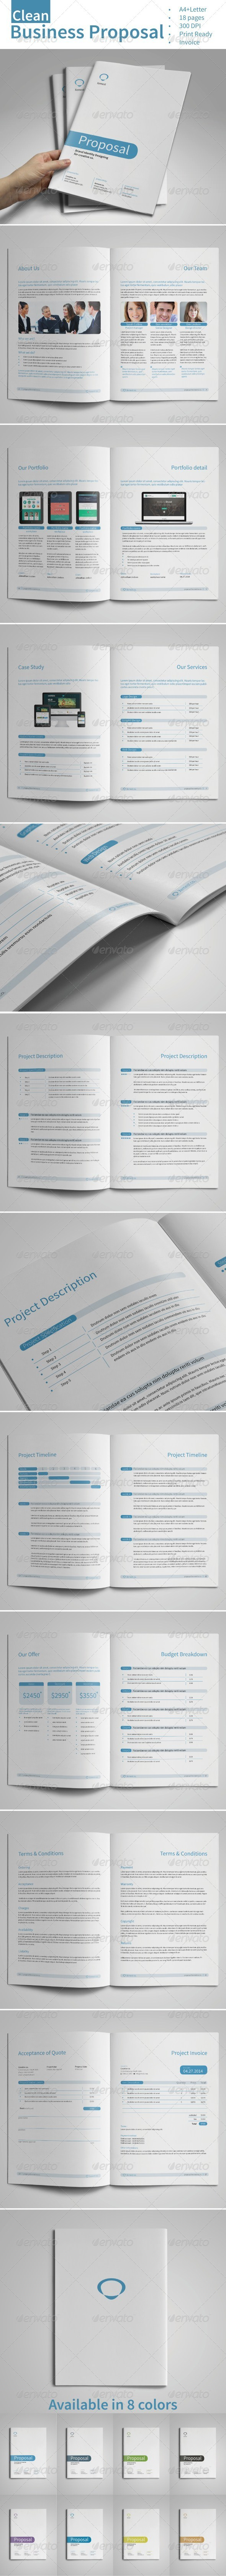 Clean Business Proposal Vol.2 - Proposals & Invoices Stationery